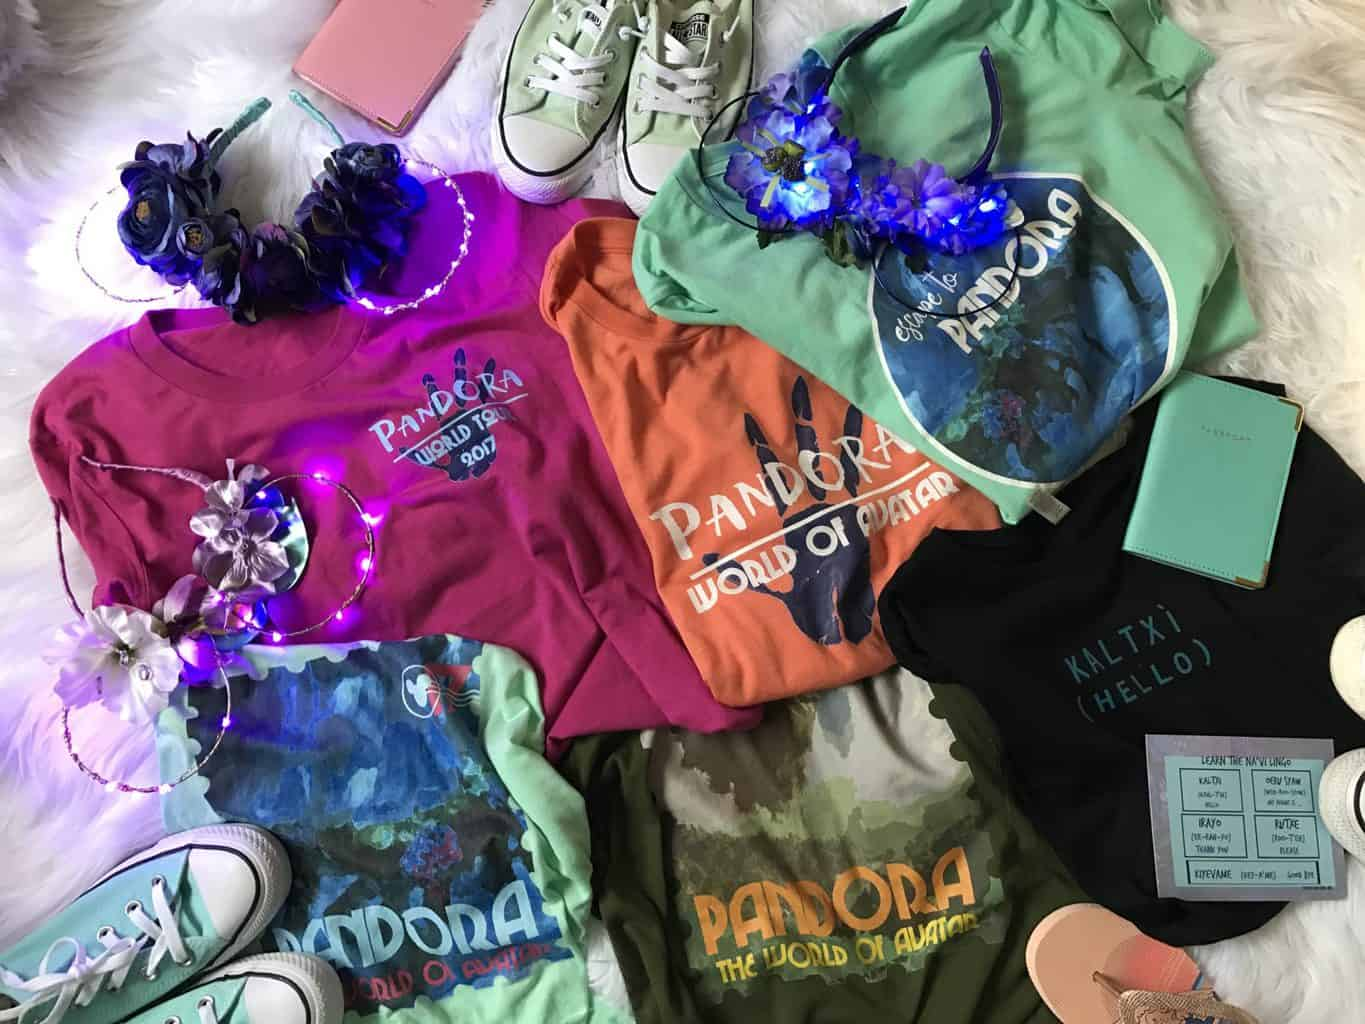 Pandora World of Avatar Merchandise